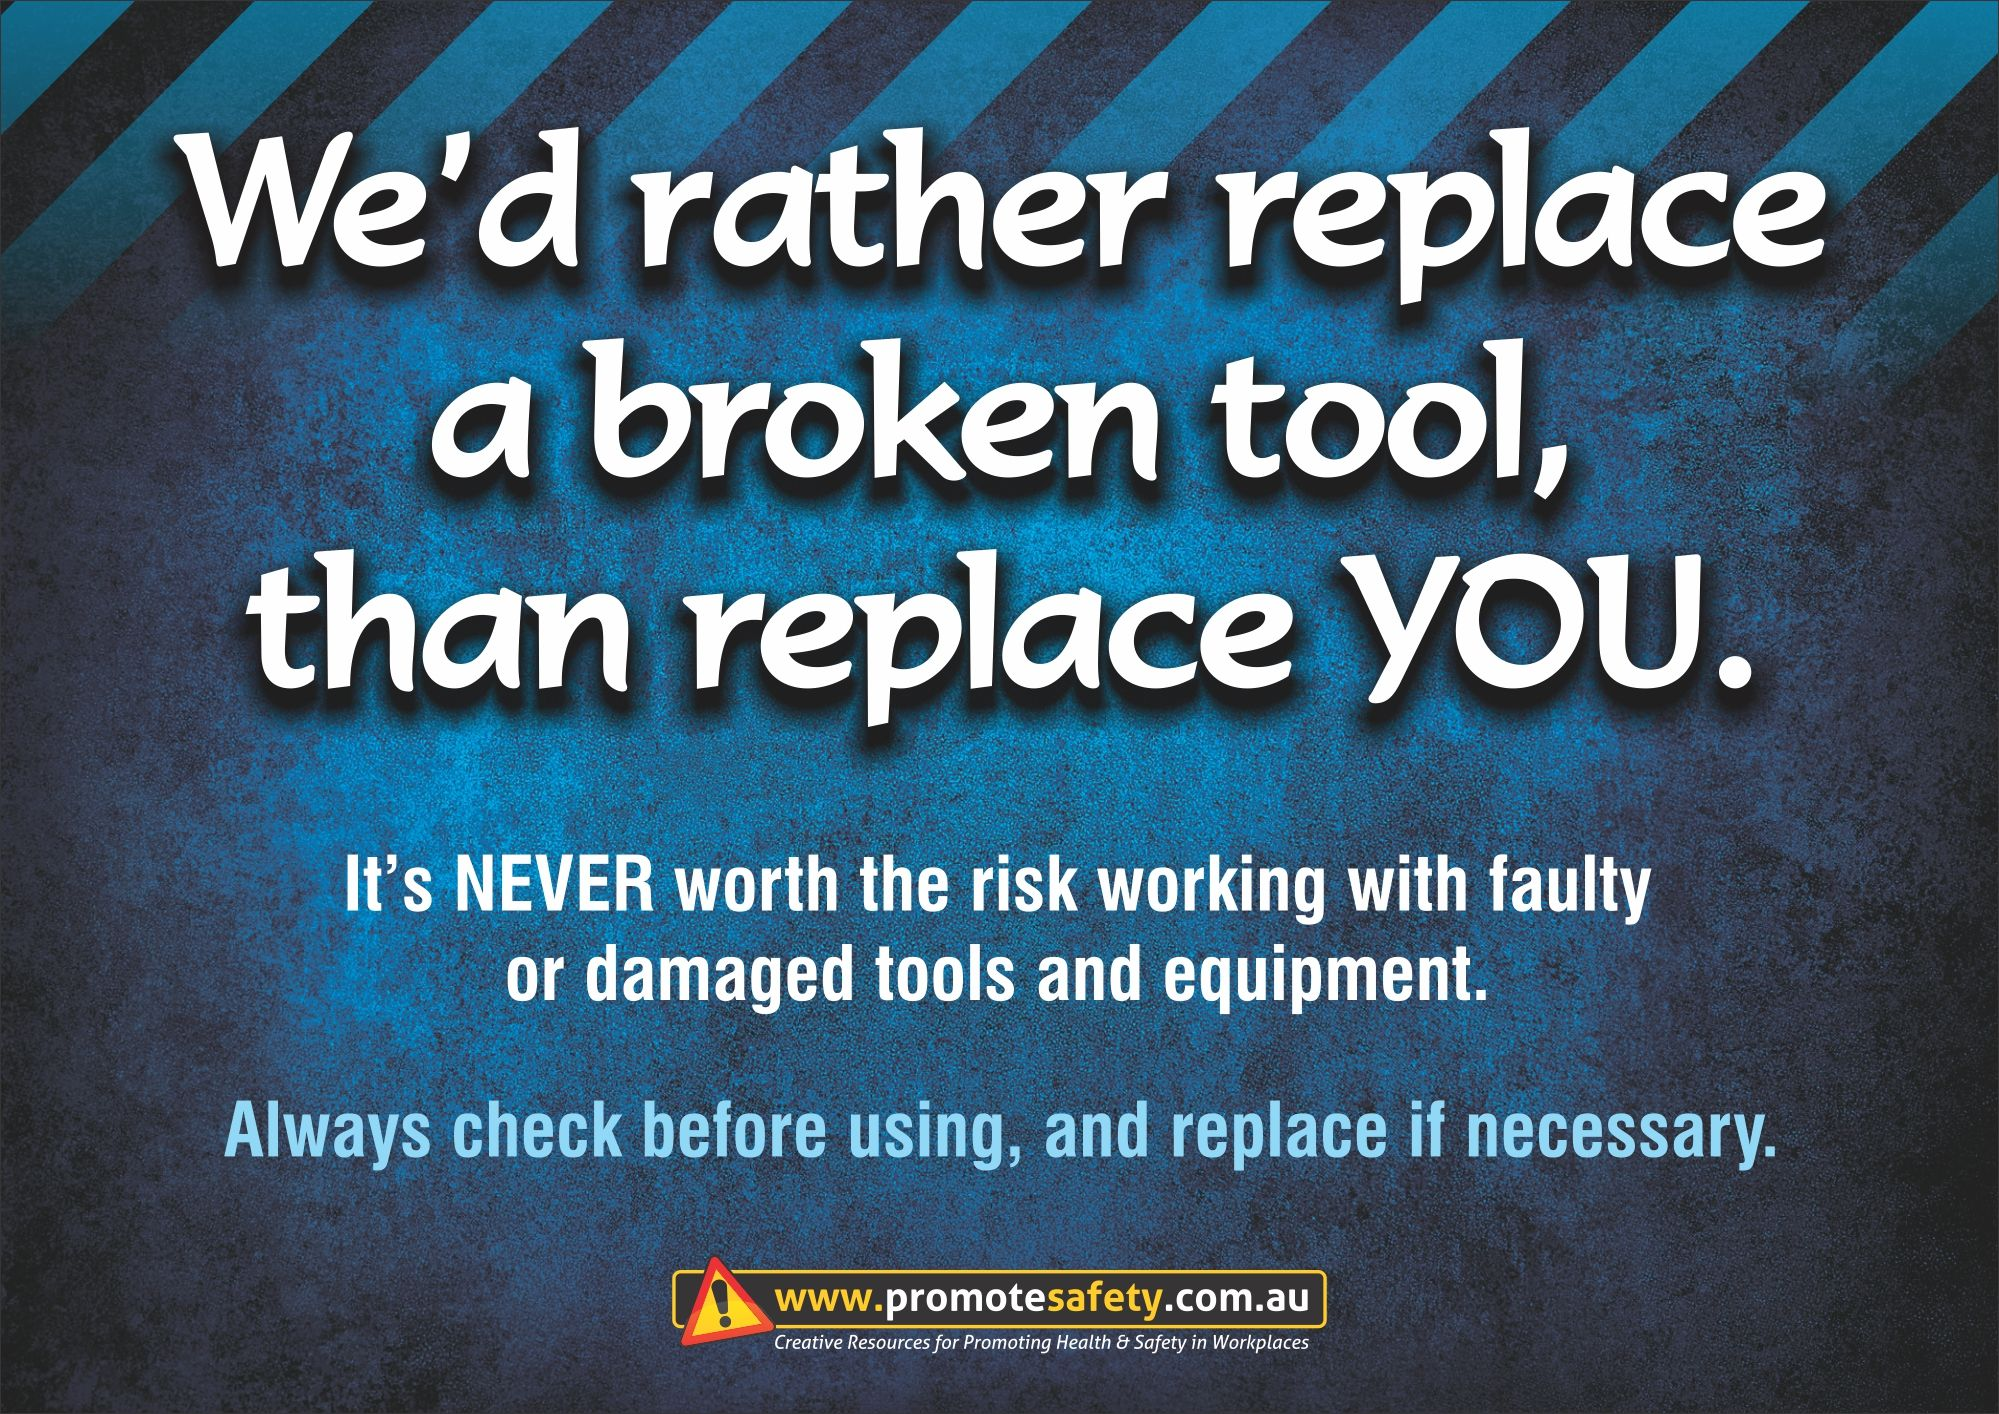 Workplace Safety Slogan We'd rather replace a broken